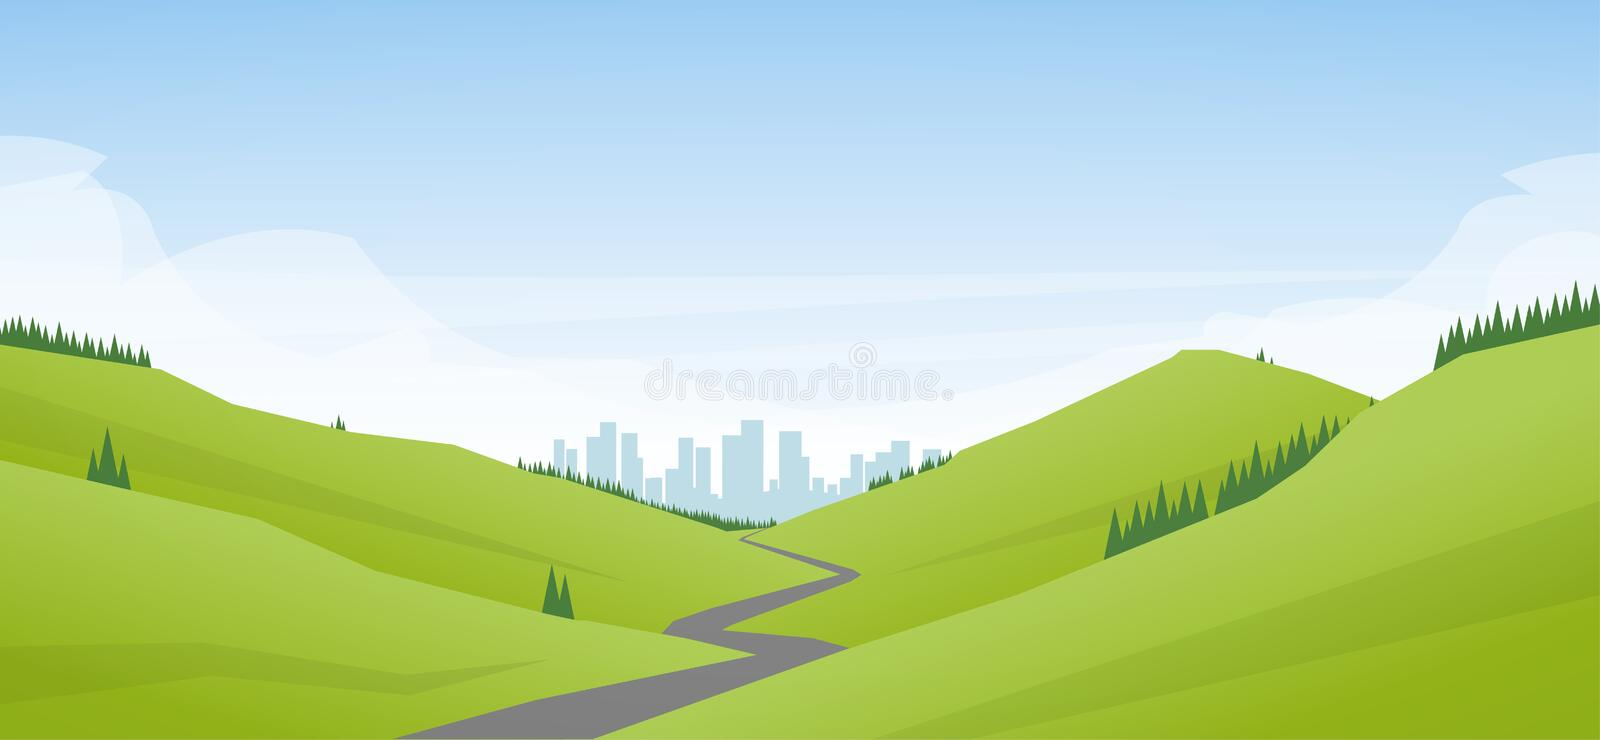 Vector illustration: Flat cartoon Landscape with road leading through the hills to the city or metropolis stock illustration